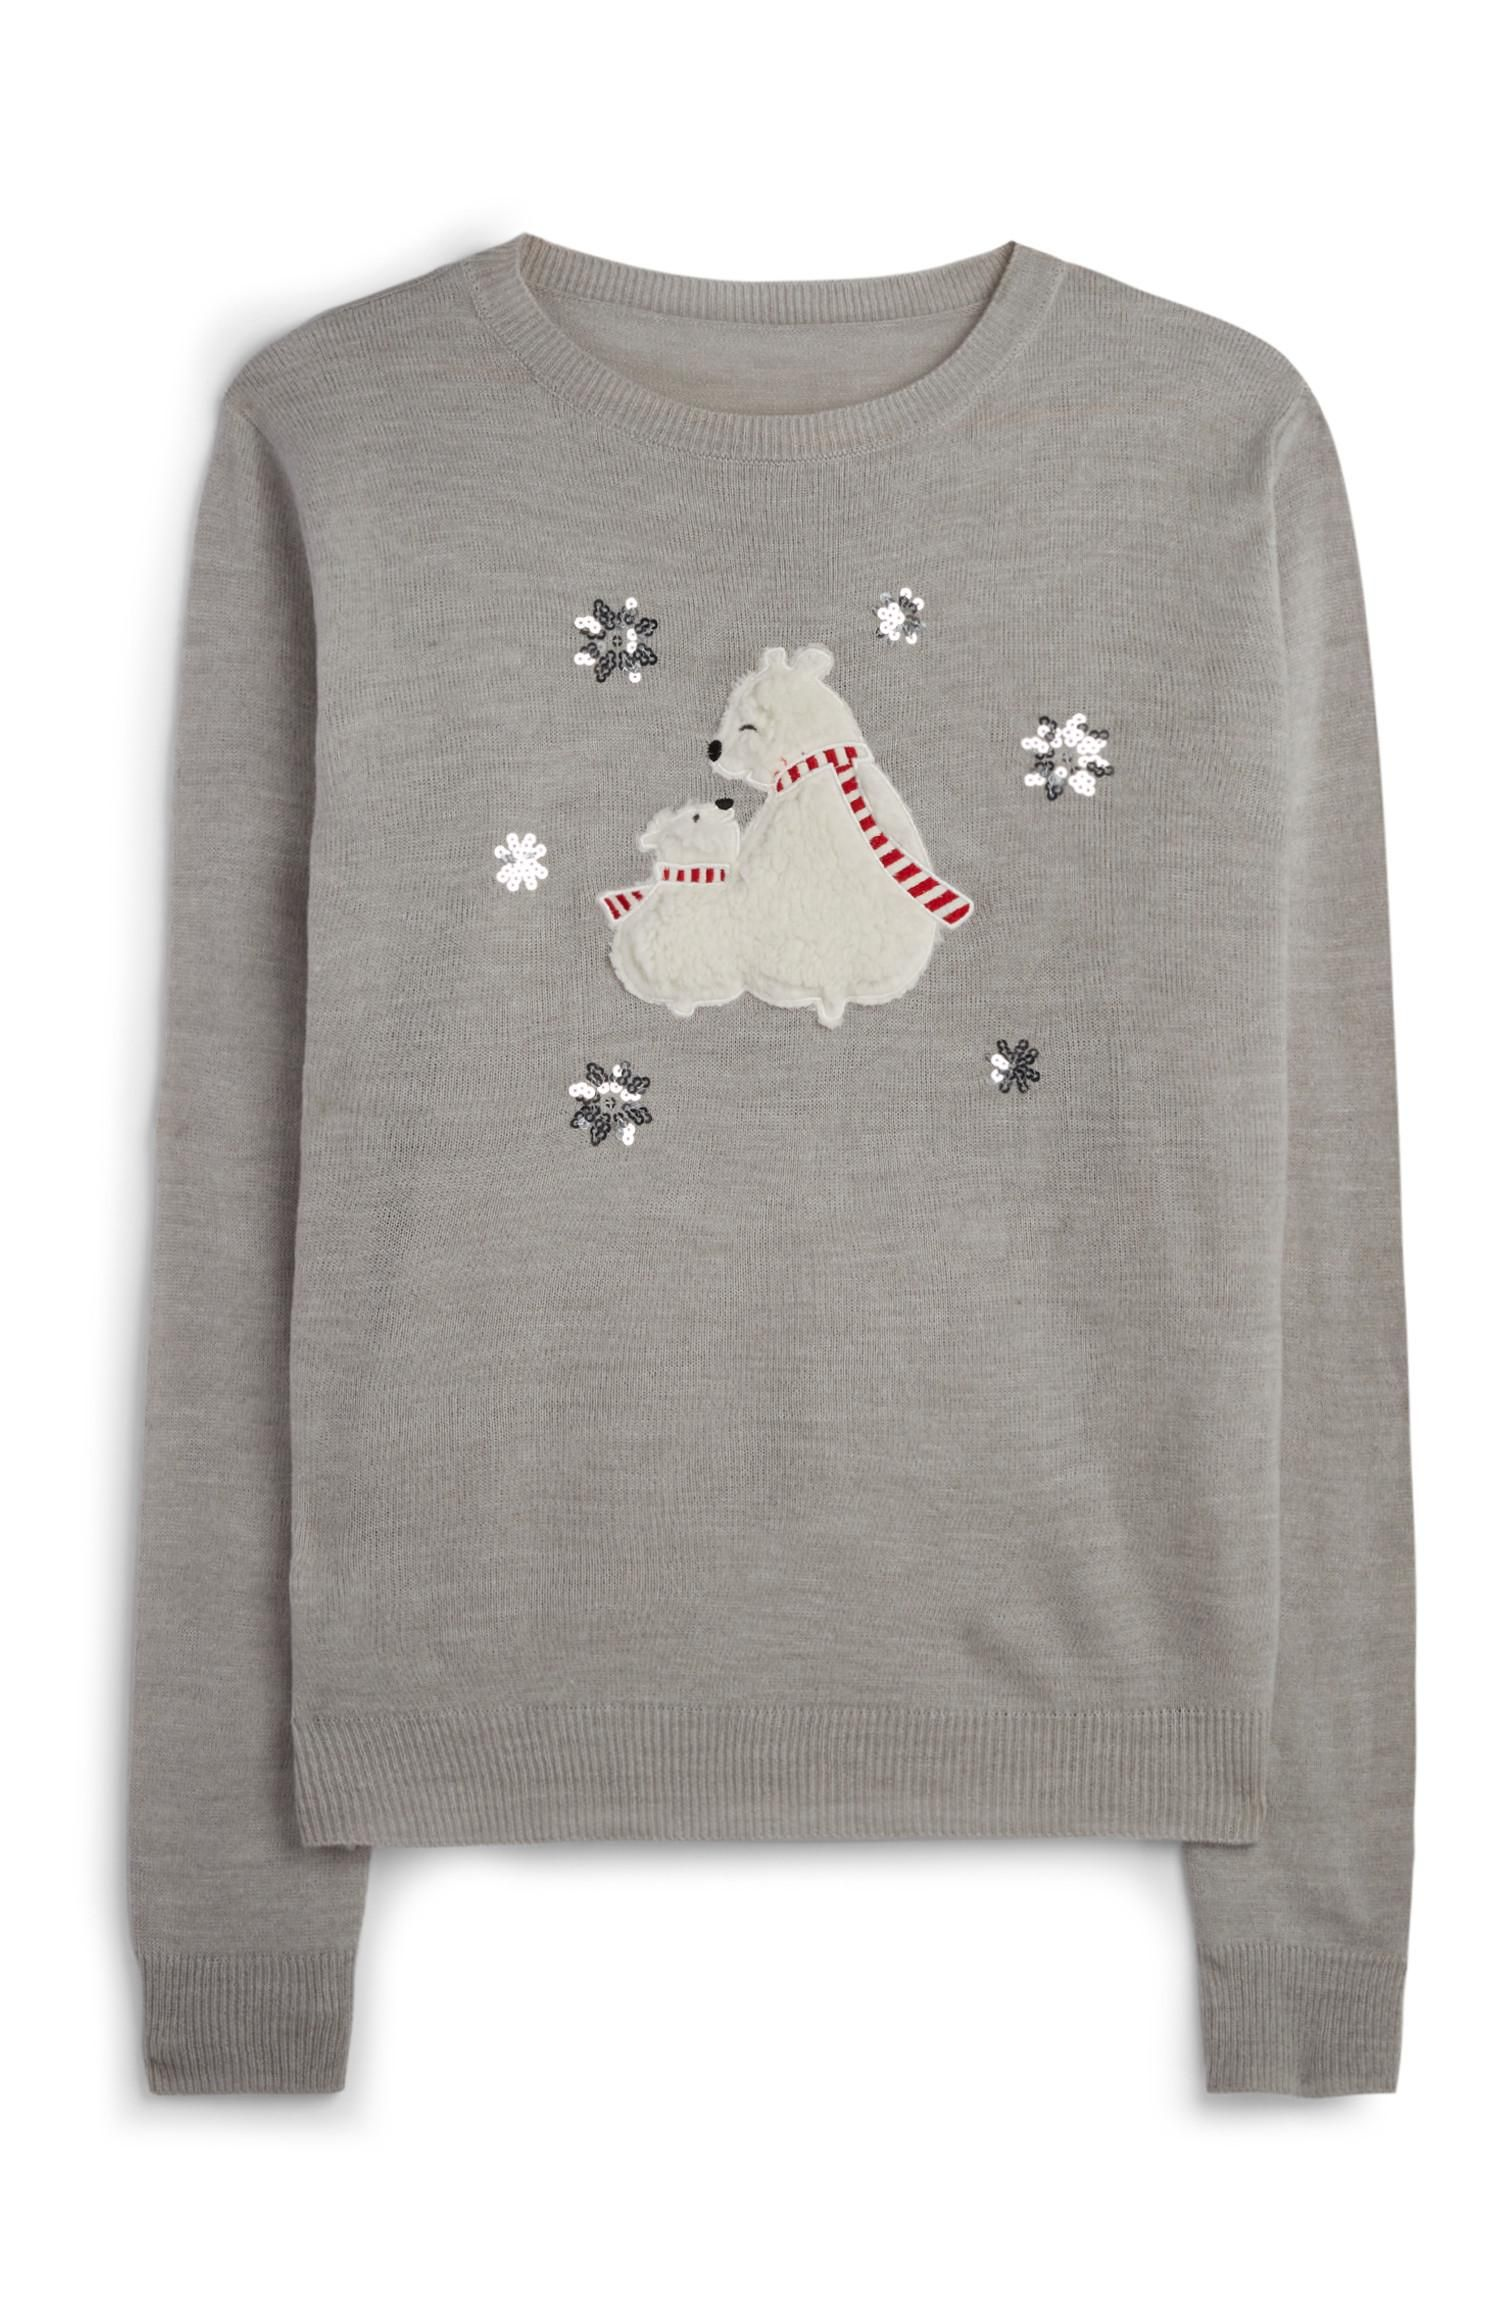 Pin By Alice On Primark Christmas Jumpers Primark Primark Outfit